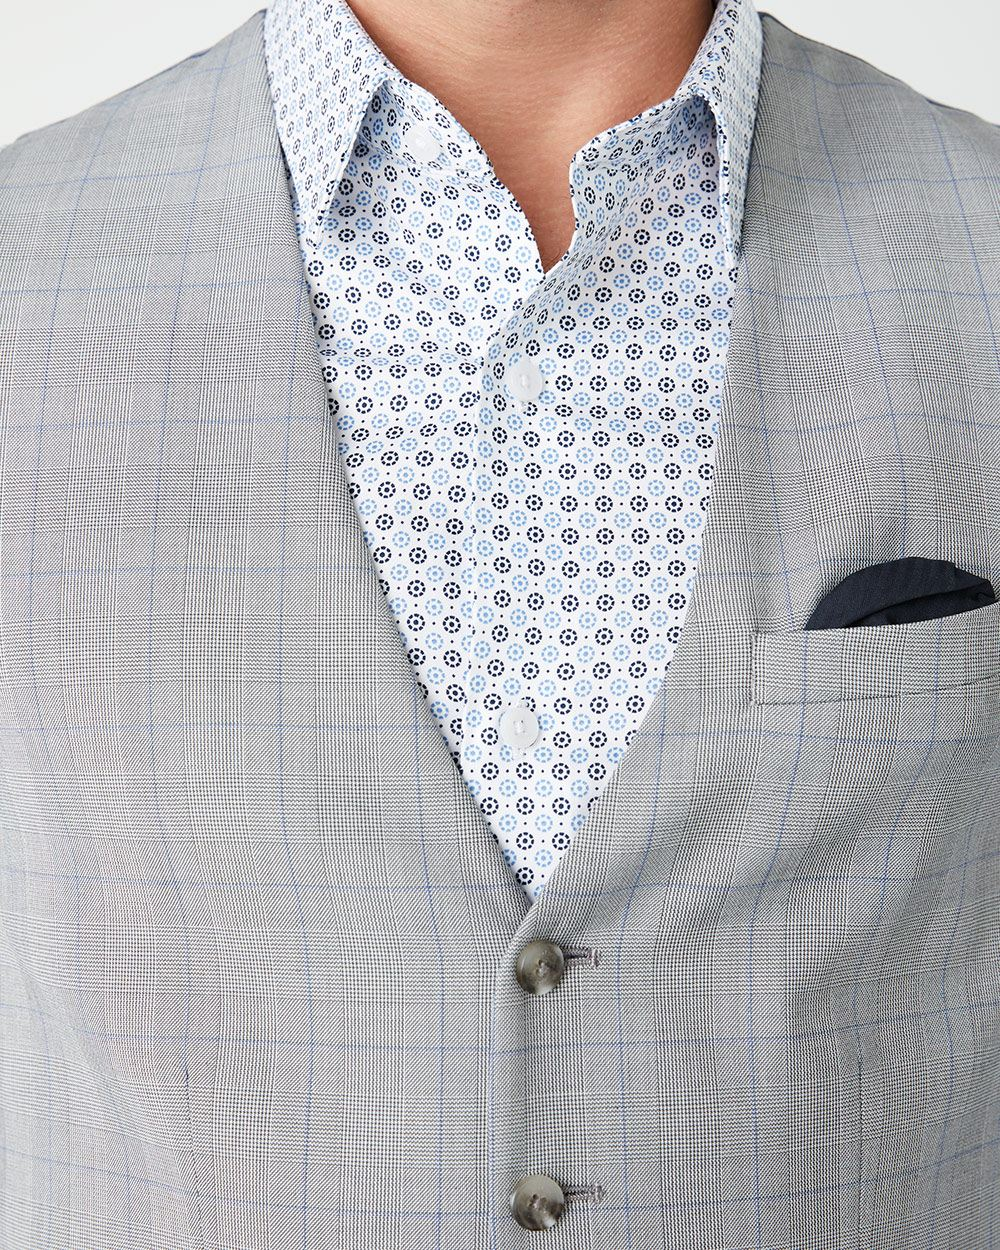 Grey and blue check suit vest